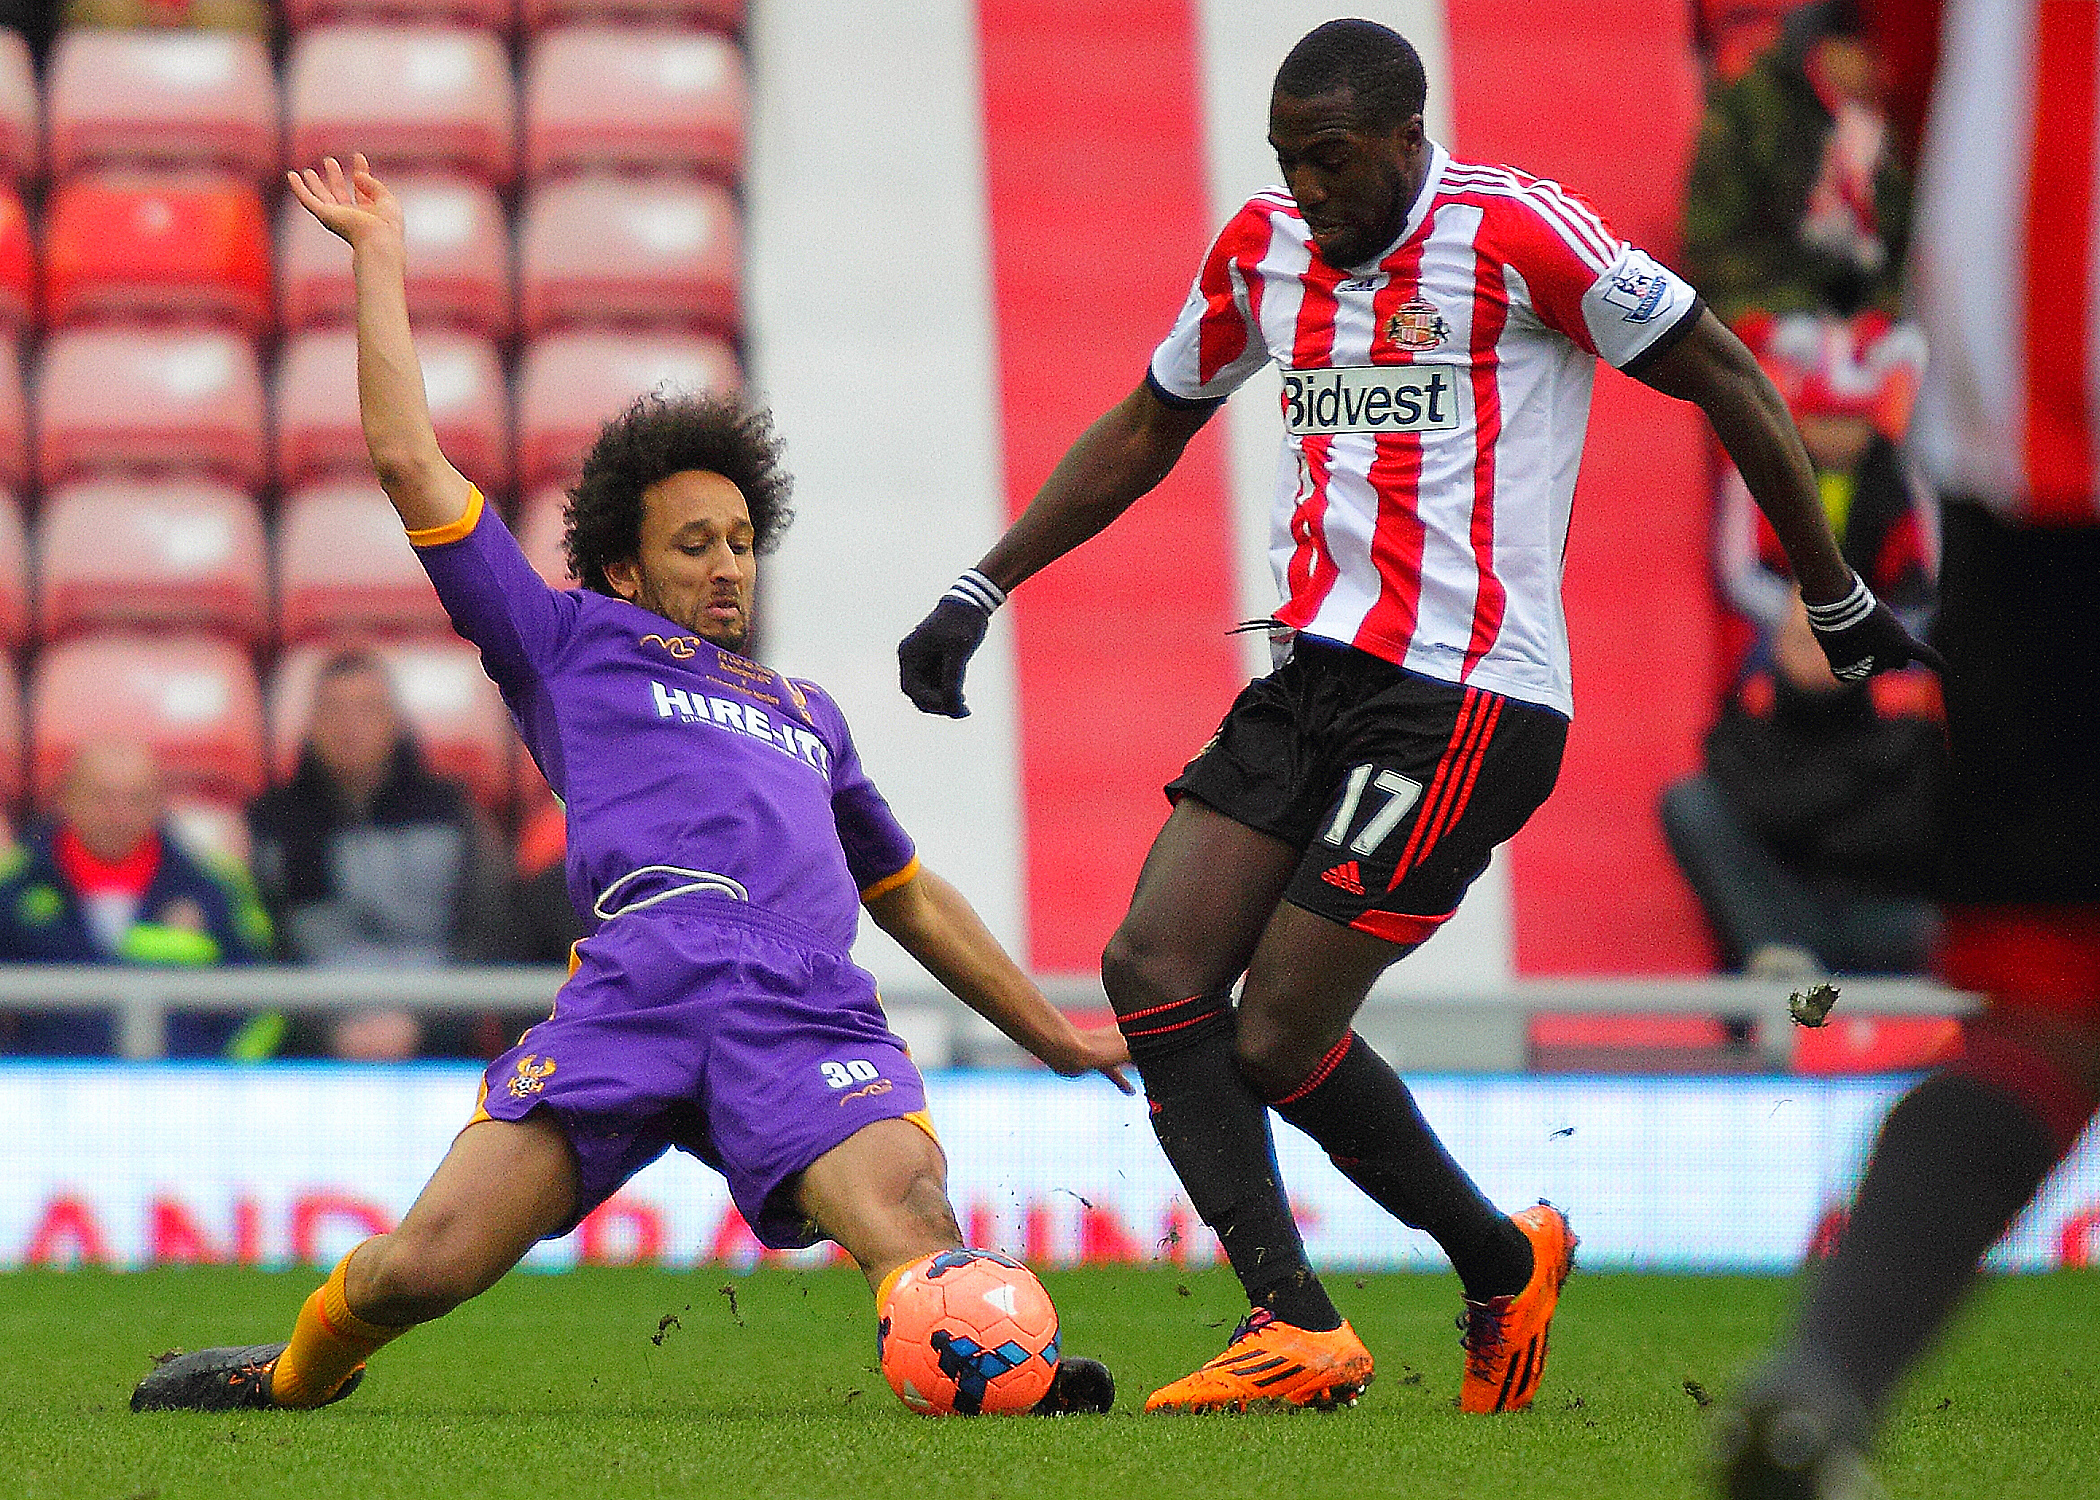 Josh Gowling denies Sunderland's Jozy Altidore with a well-timed challenge. Picture: ADRIAN HOSKINS